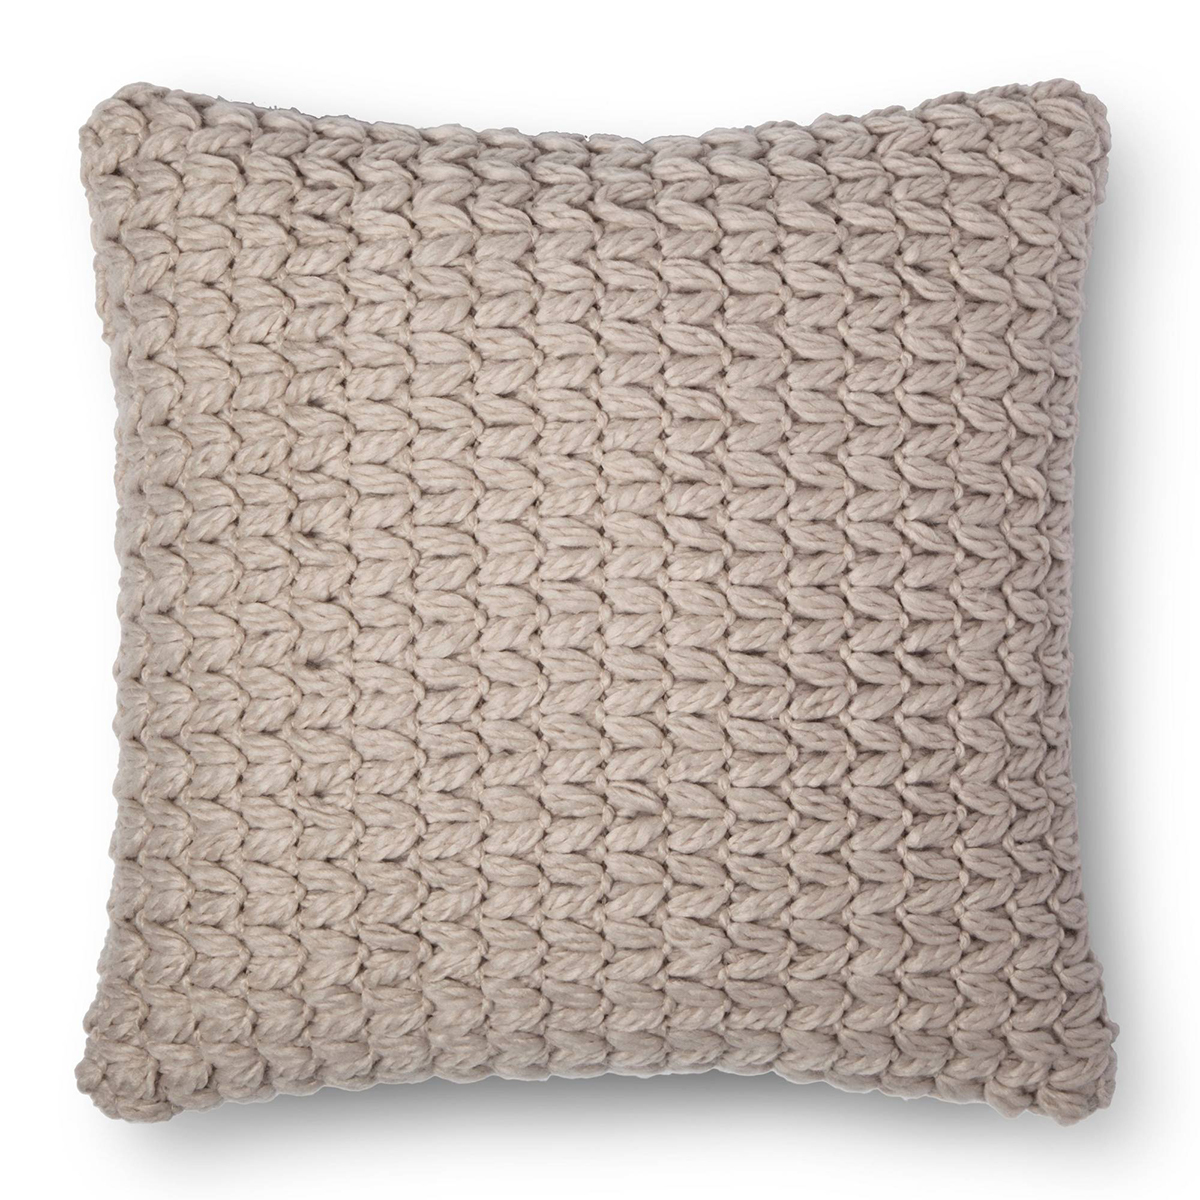 Throw pillow in tan with chunky knit design photo